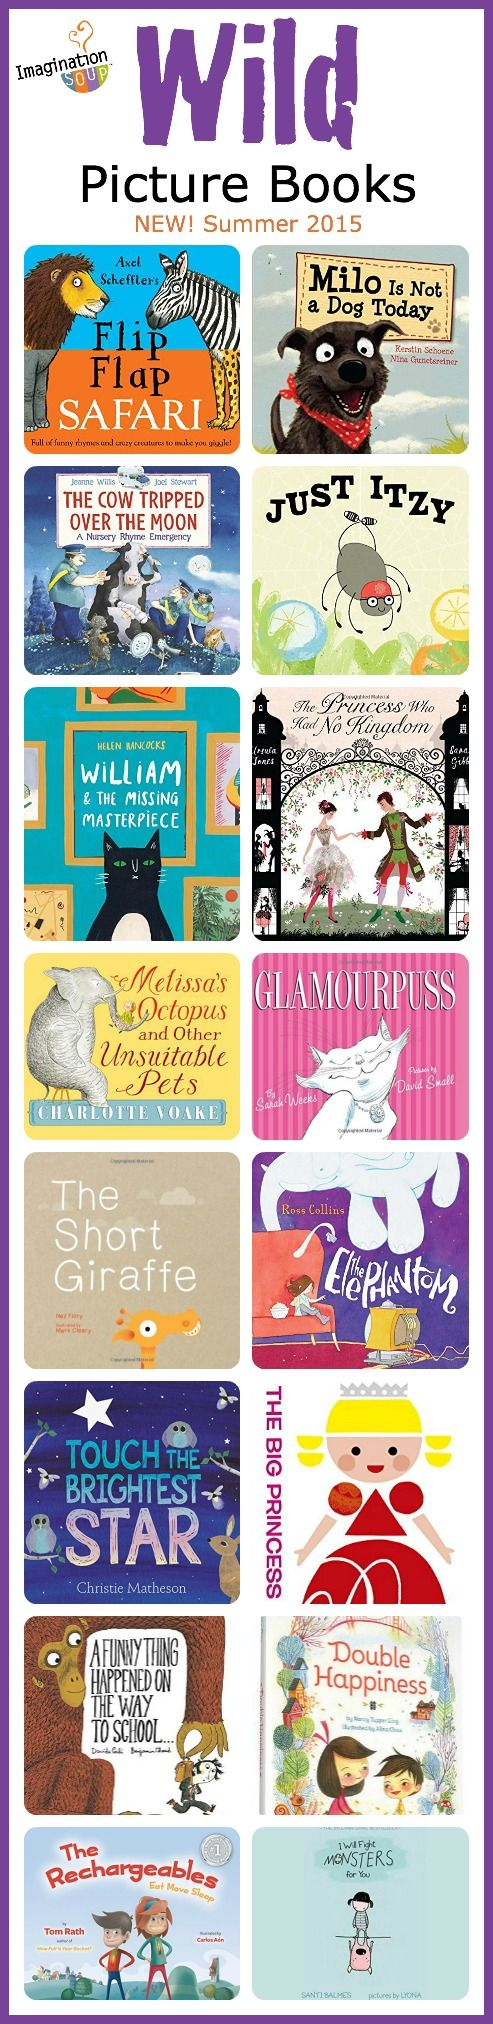 new picture books I'm loving, summer 2015